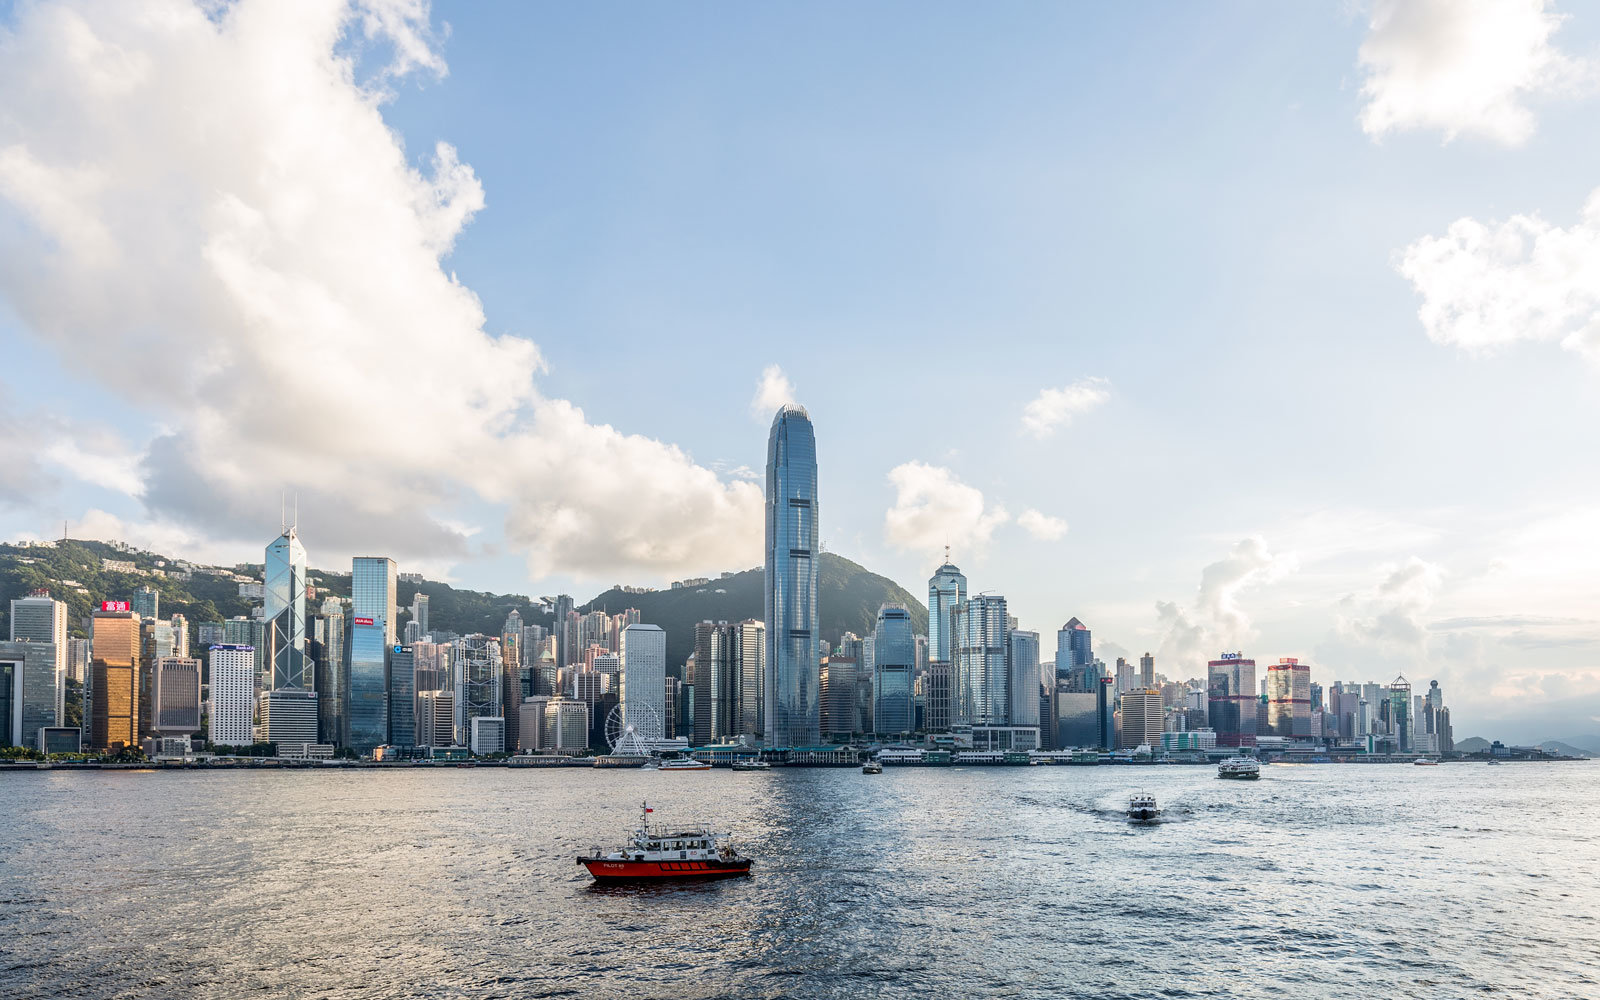 Hong Kong has been ranked as the most expensive city for expats.